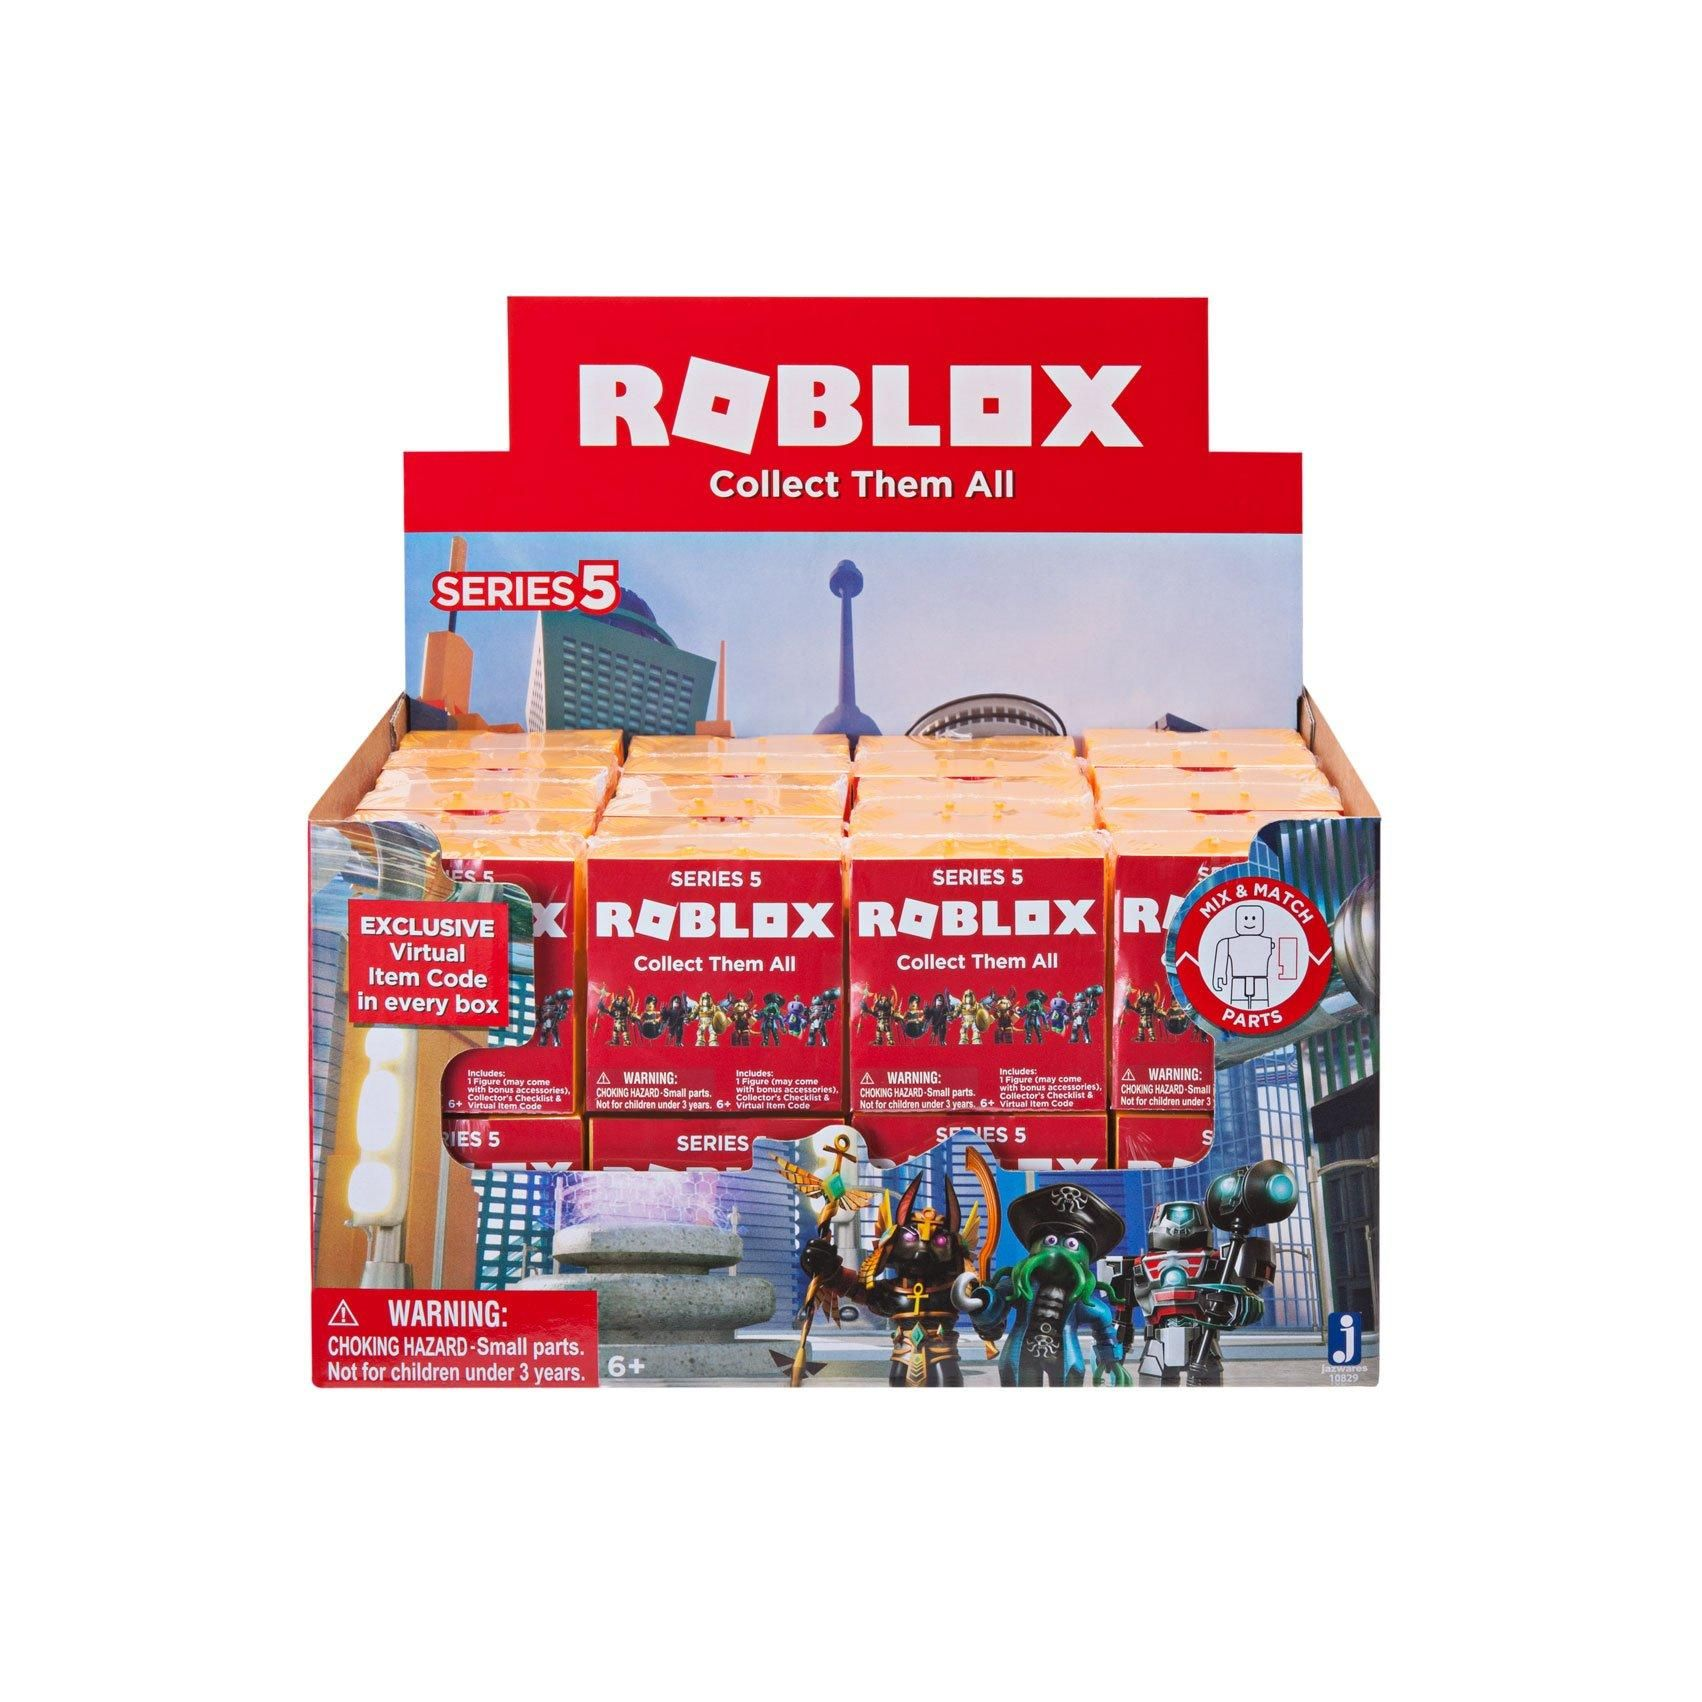 Roblox Series 5 Blind Box Figure Gamestop Roblox Toy Collection Animal Planet Toys